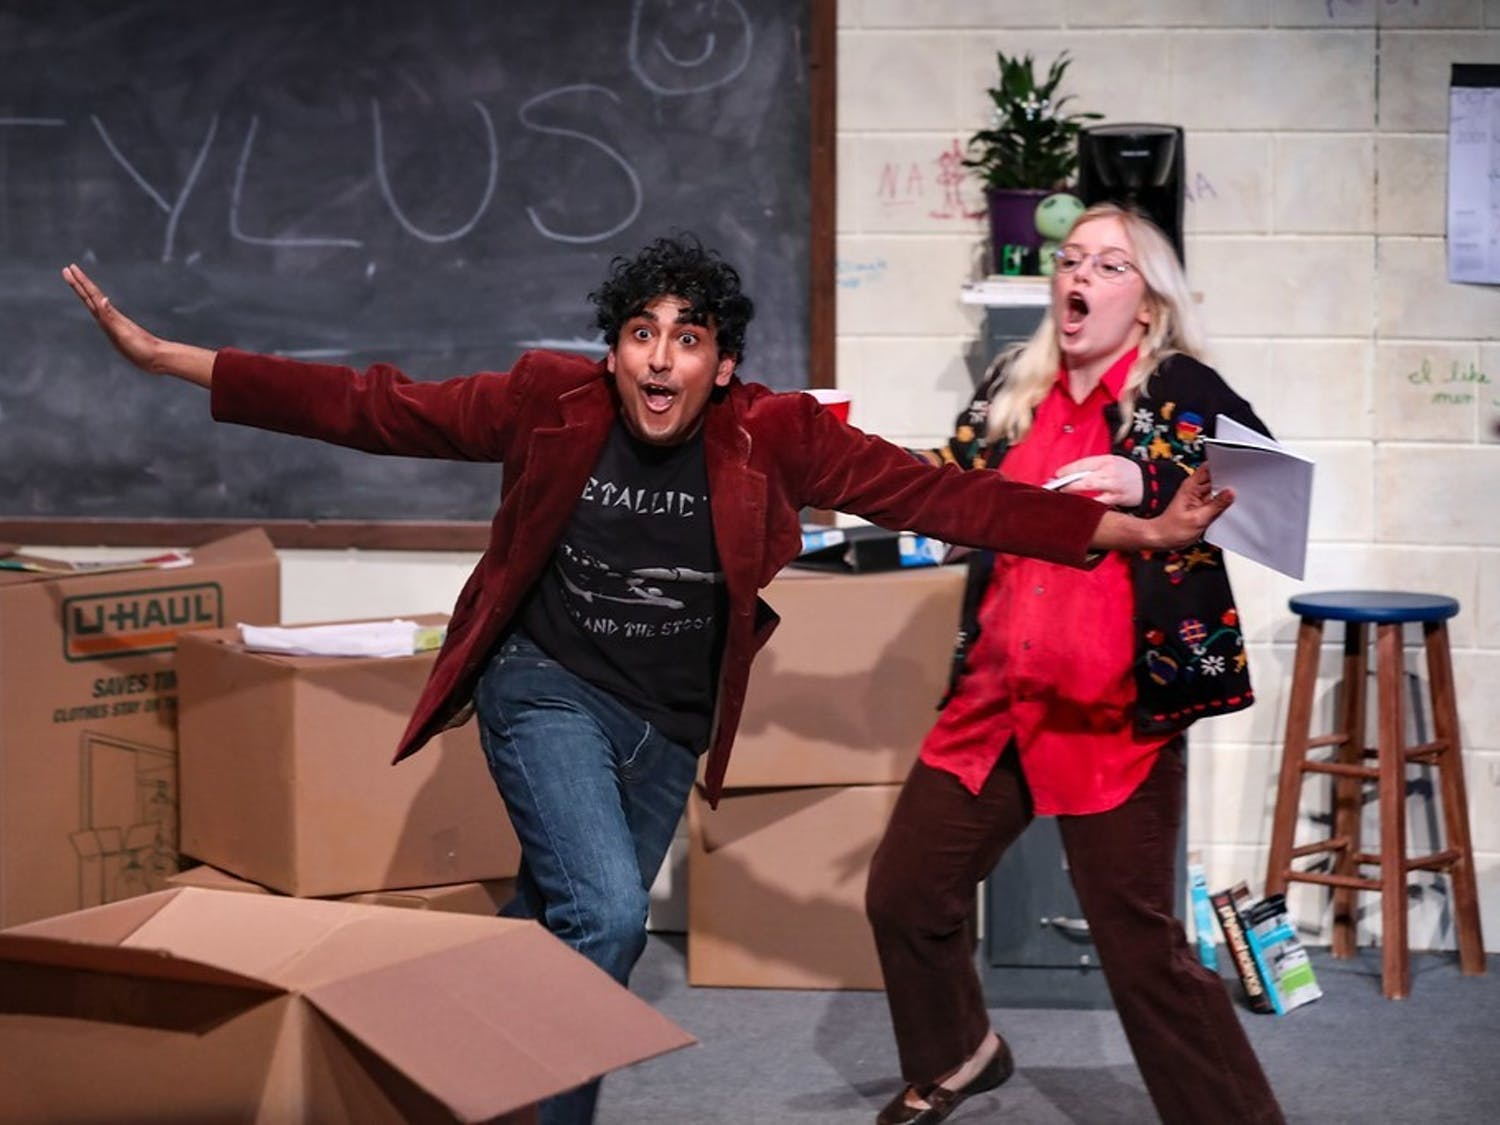 Junior Anish Pinnamaraju, a dramatic arts and communications double major, acting in a recent production with Kenan Theatre Company. Photo courtesy of Anish Pinnamaraju.